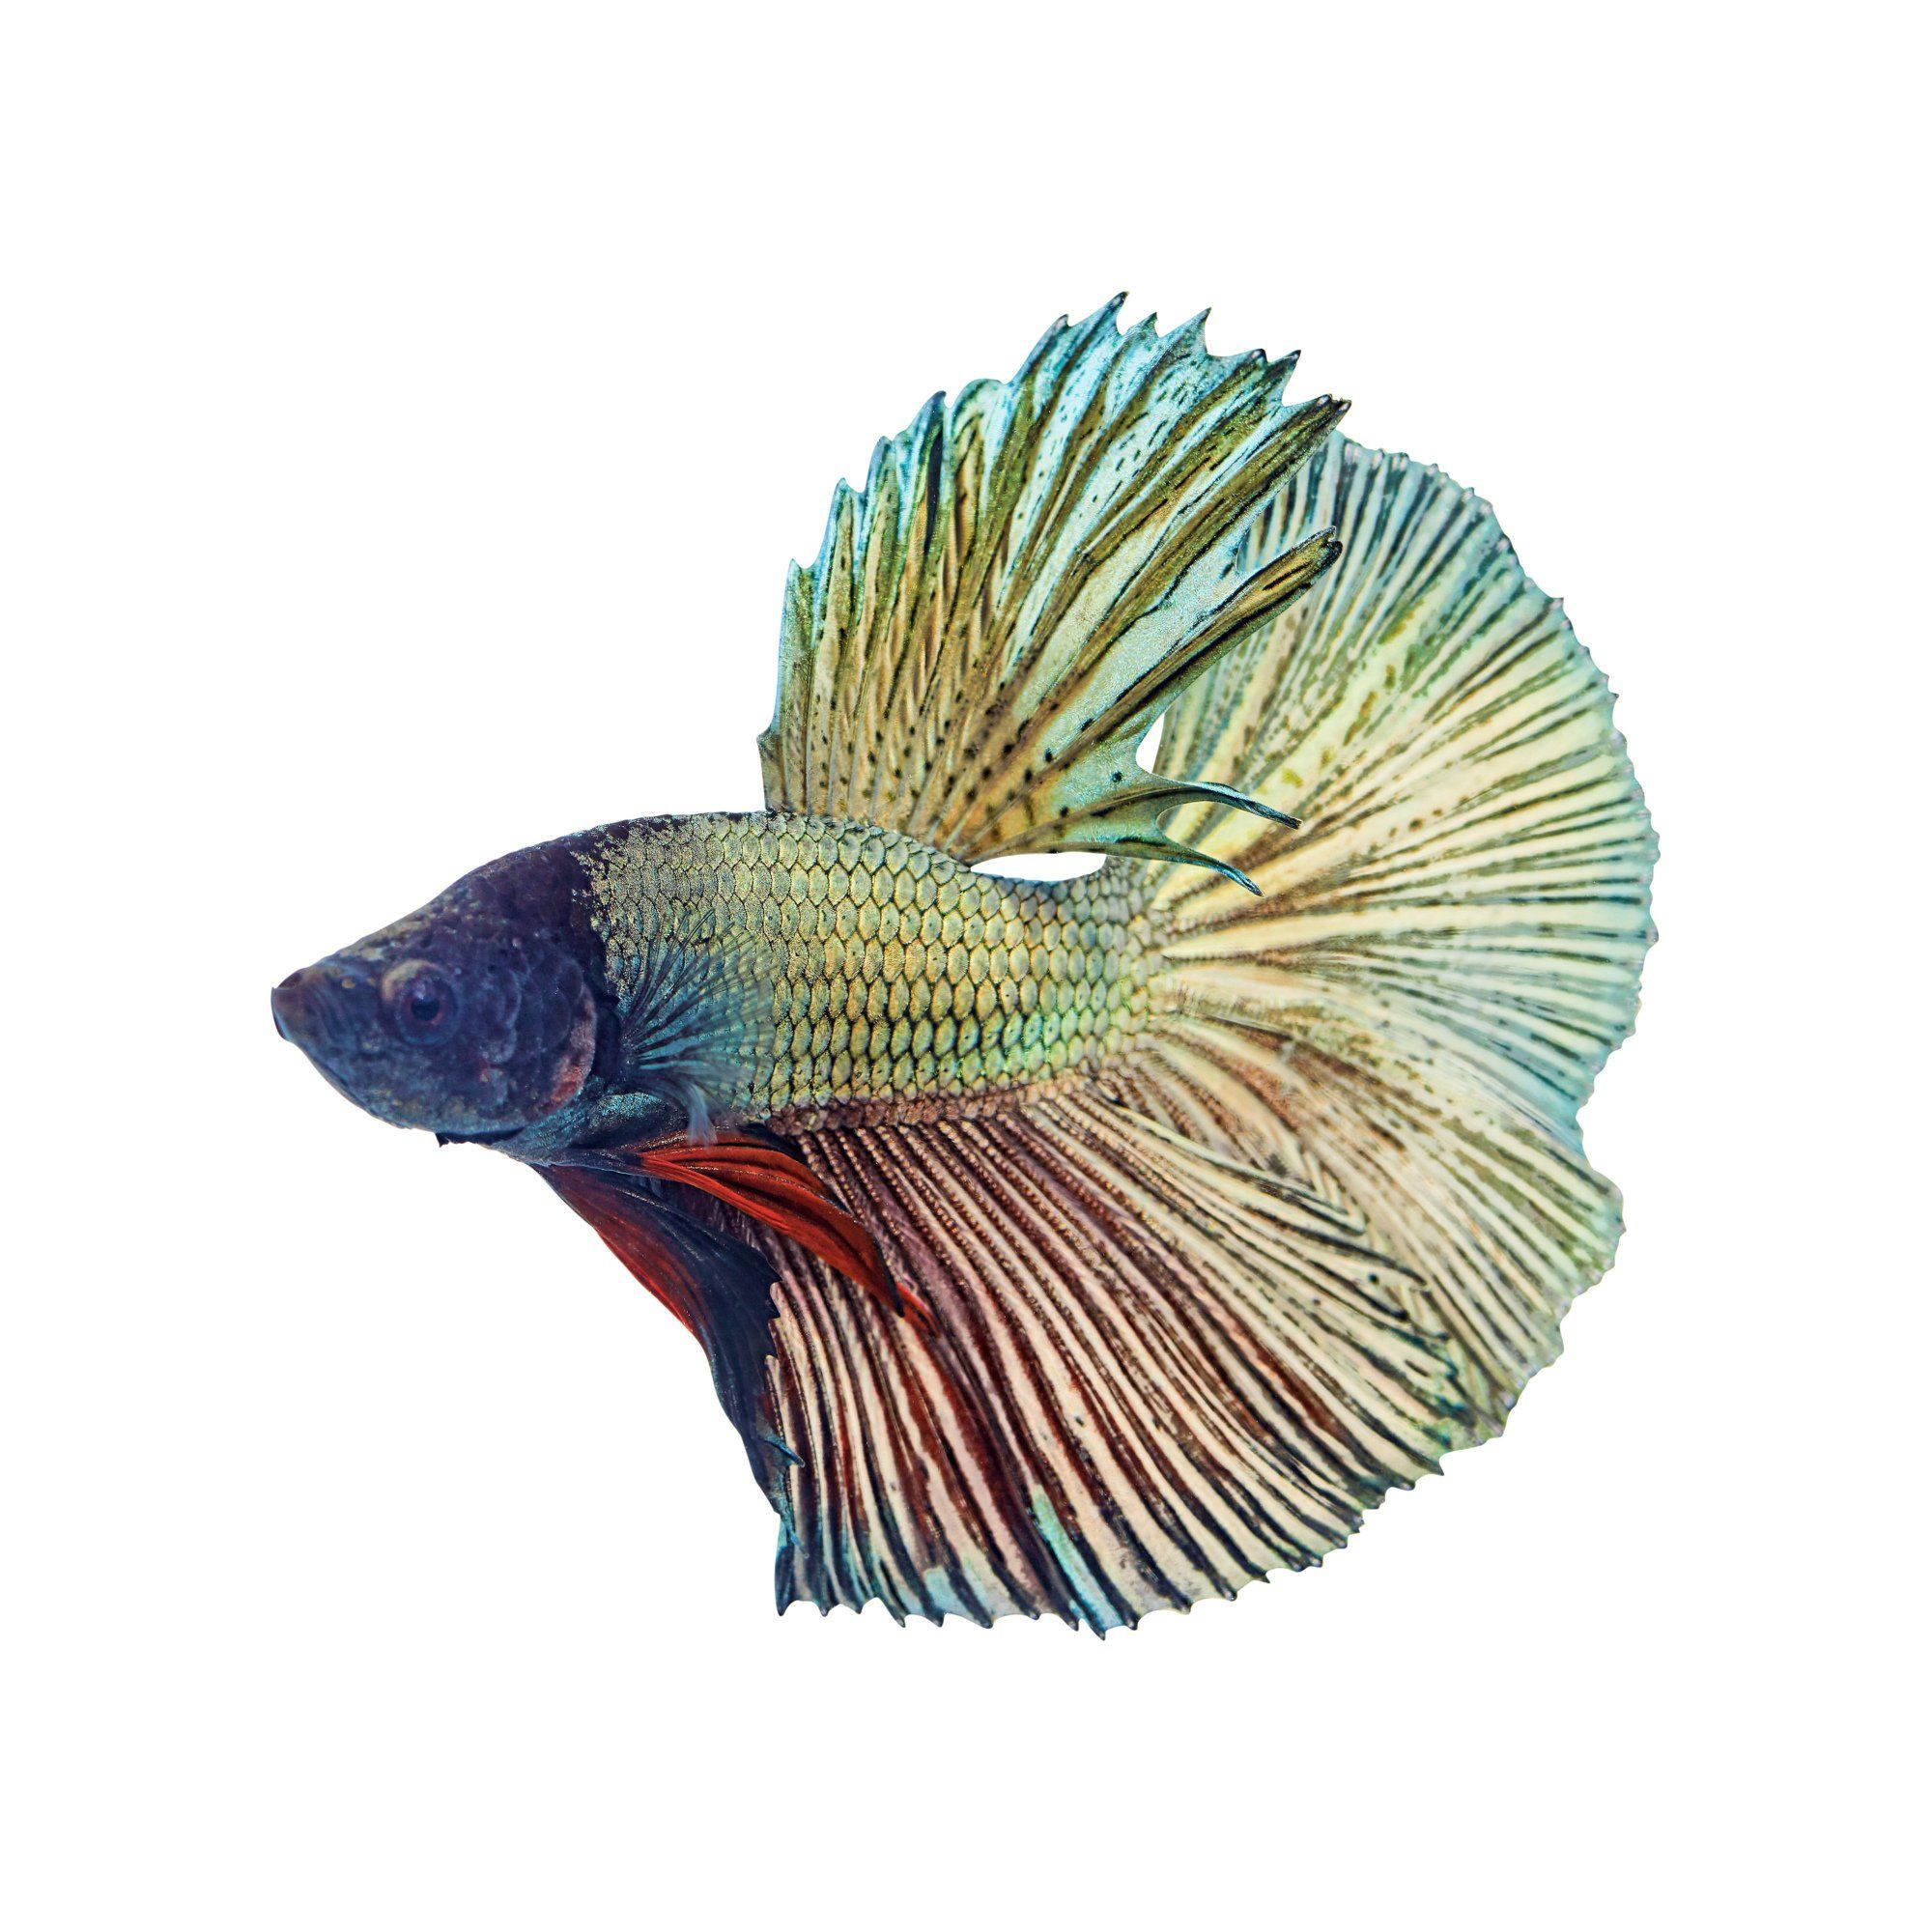 Male Copper Bettas For Sale Order Online Petco Betta Betta Fish Petco